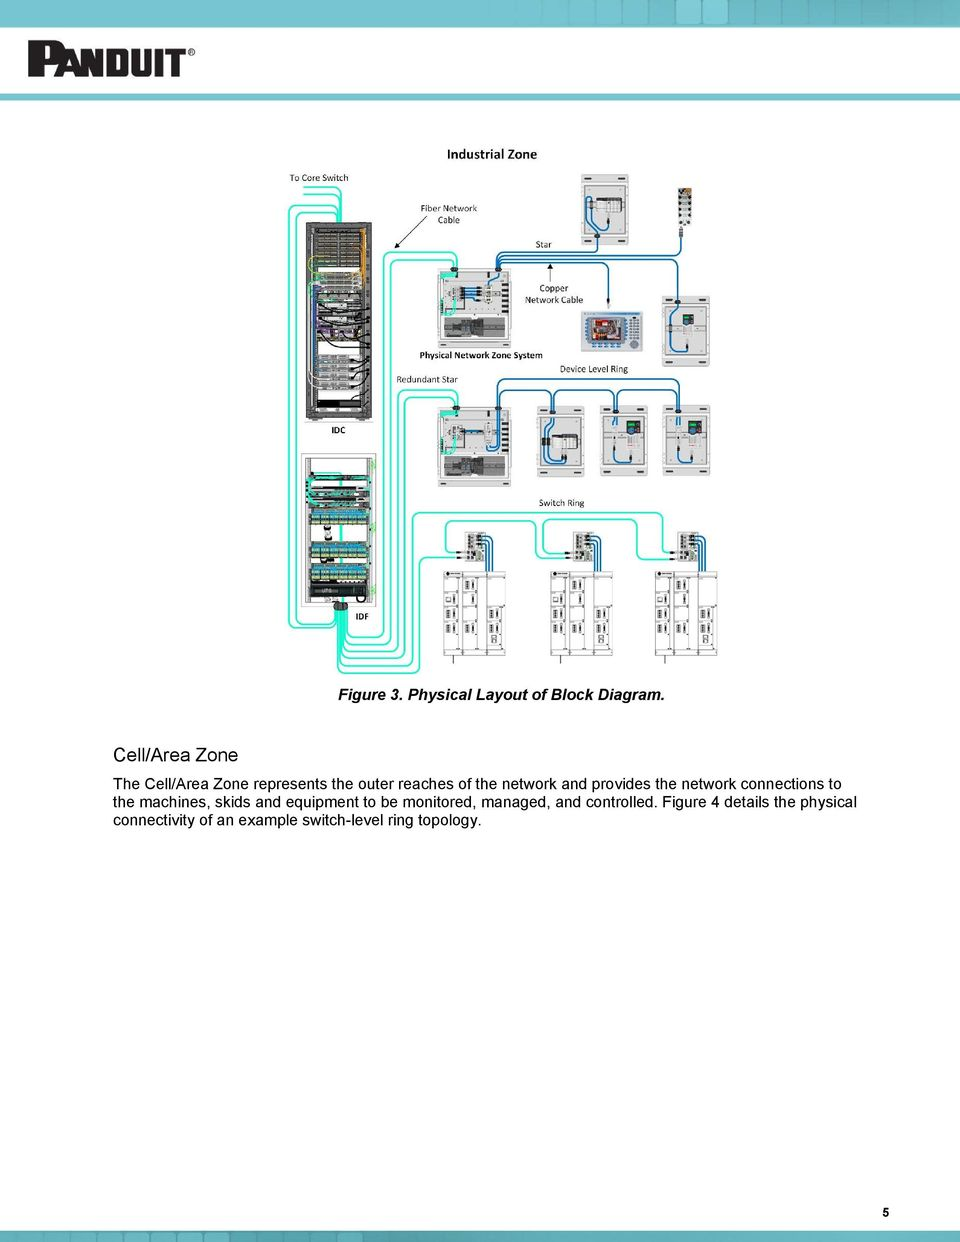 Physical Infrastructure For A Resilient Converged Plantwide Ethernet Physicalblockdiagramjpg And Provides The Network Connections To Machines Skids Equipment Be